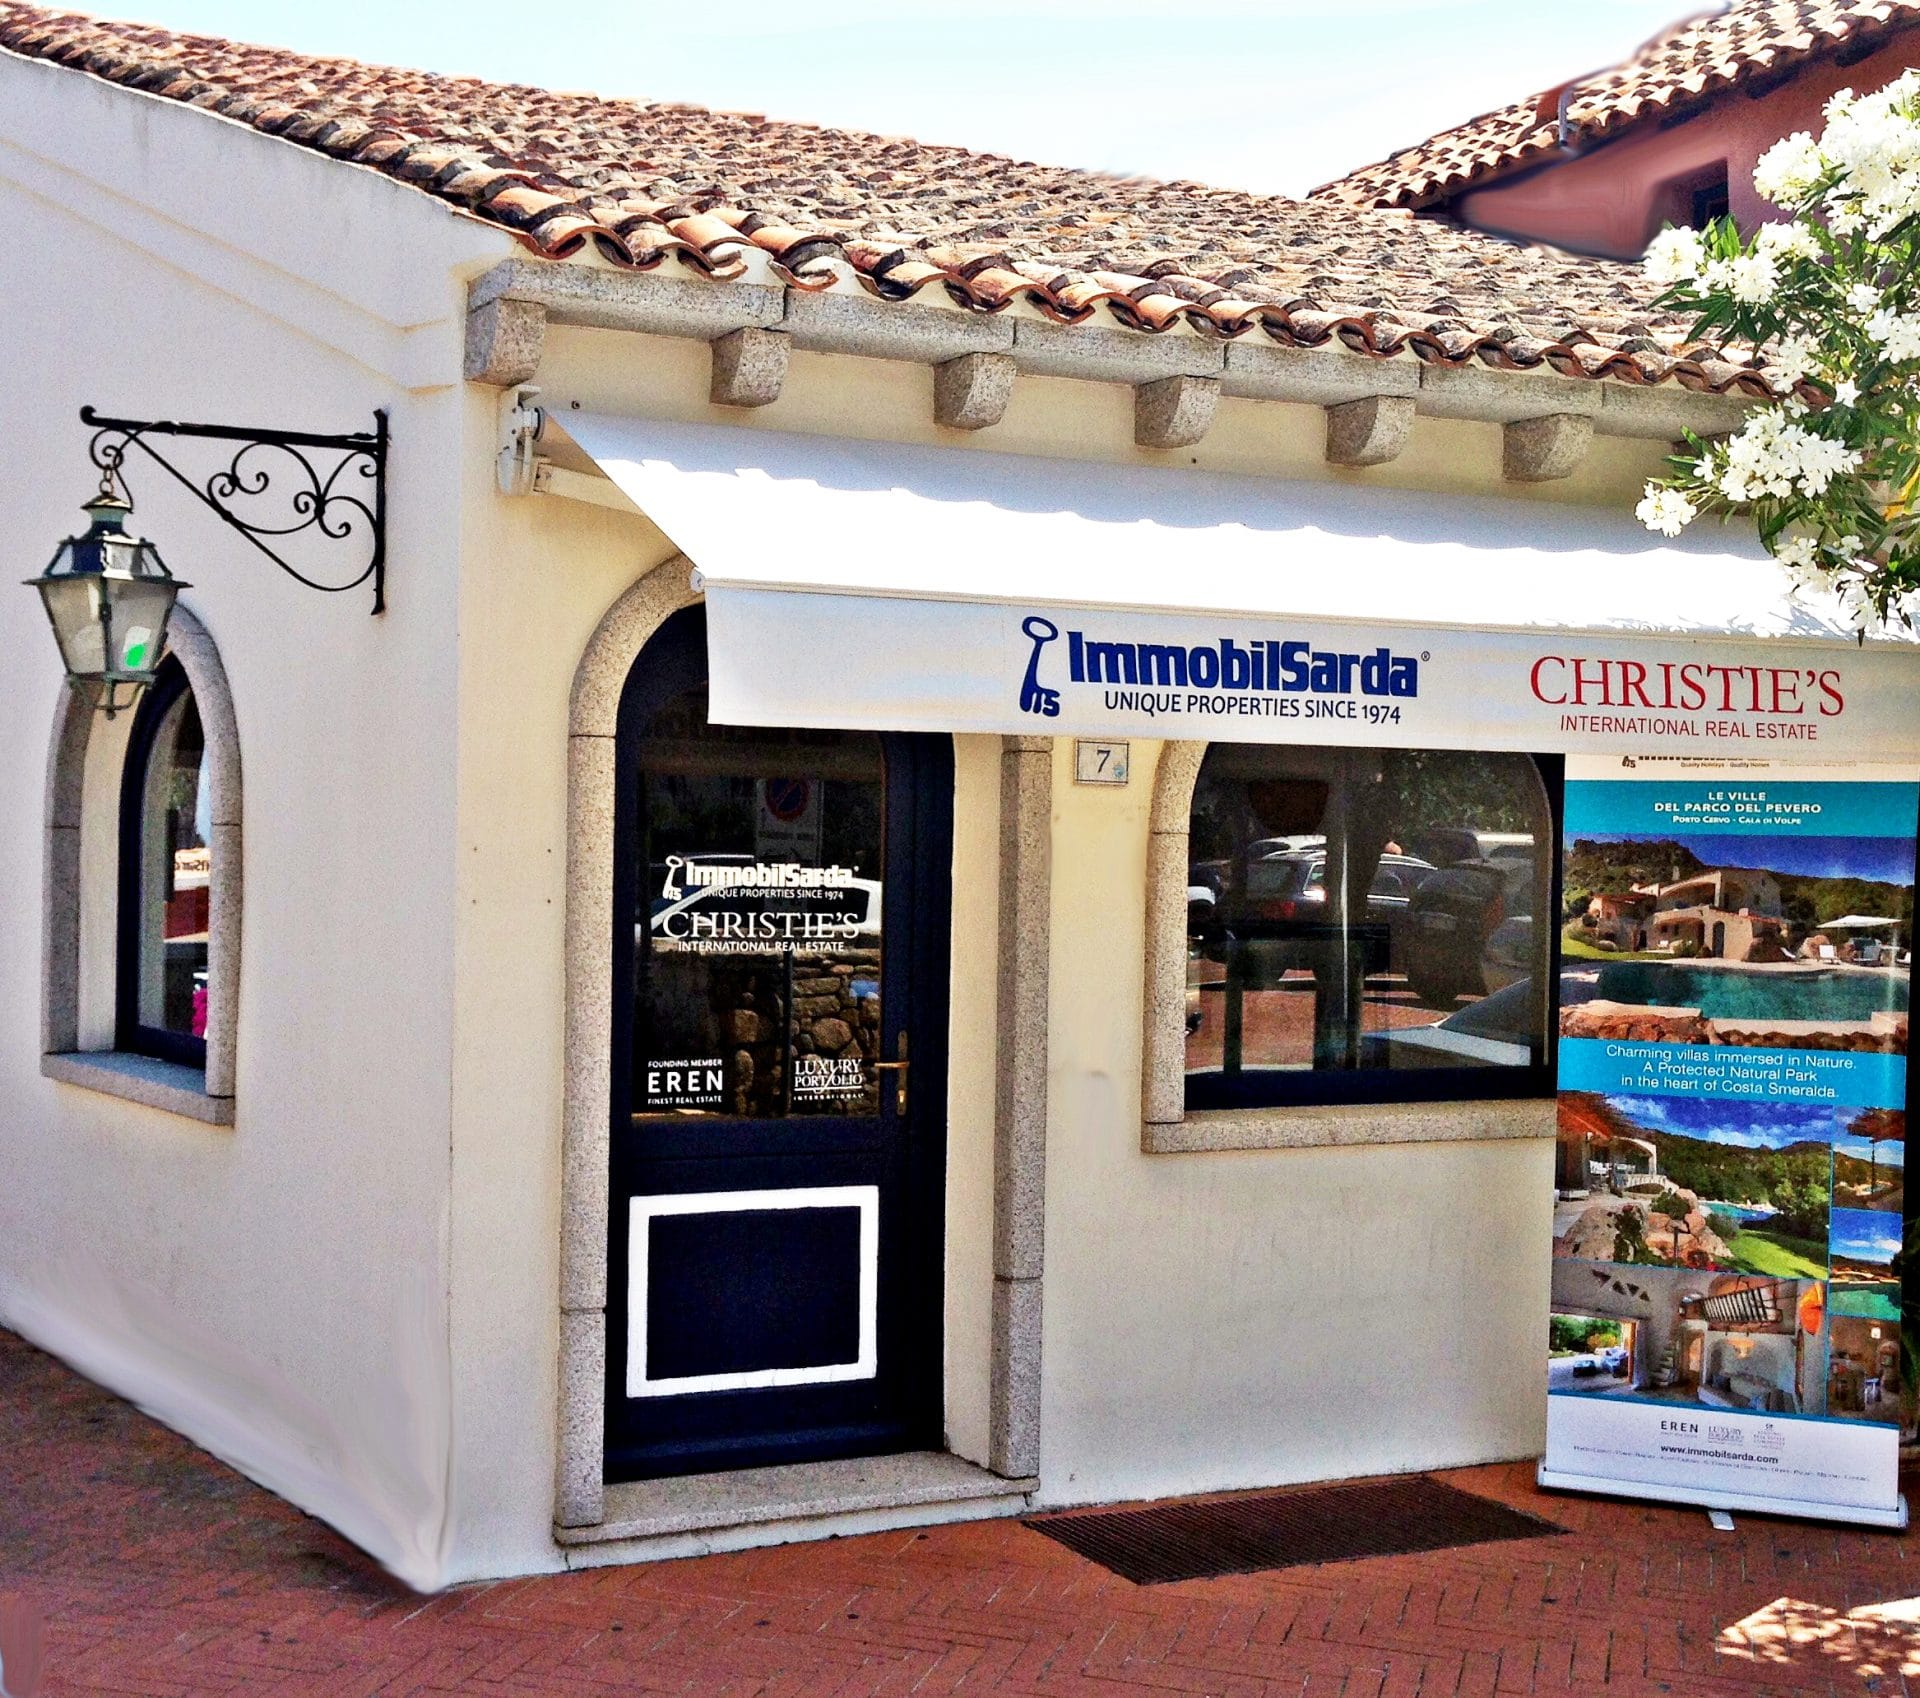 Immobilsarda inaugurates its new Office in Porto Rotondo